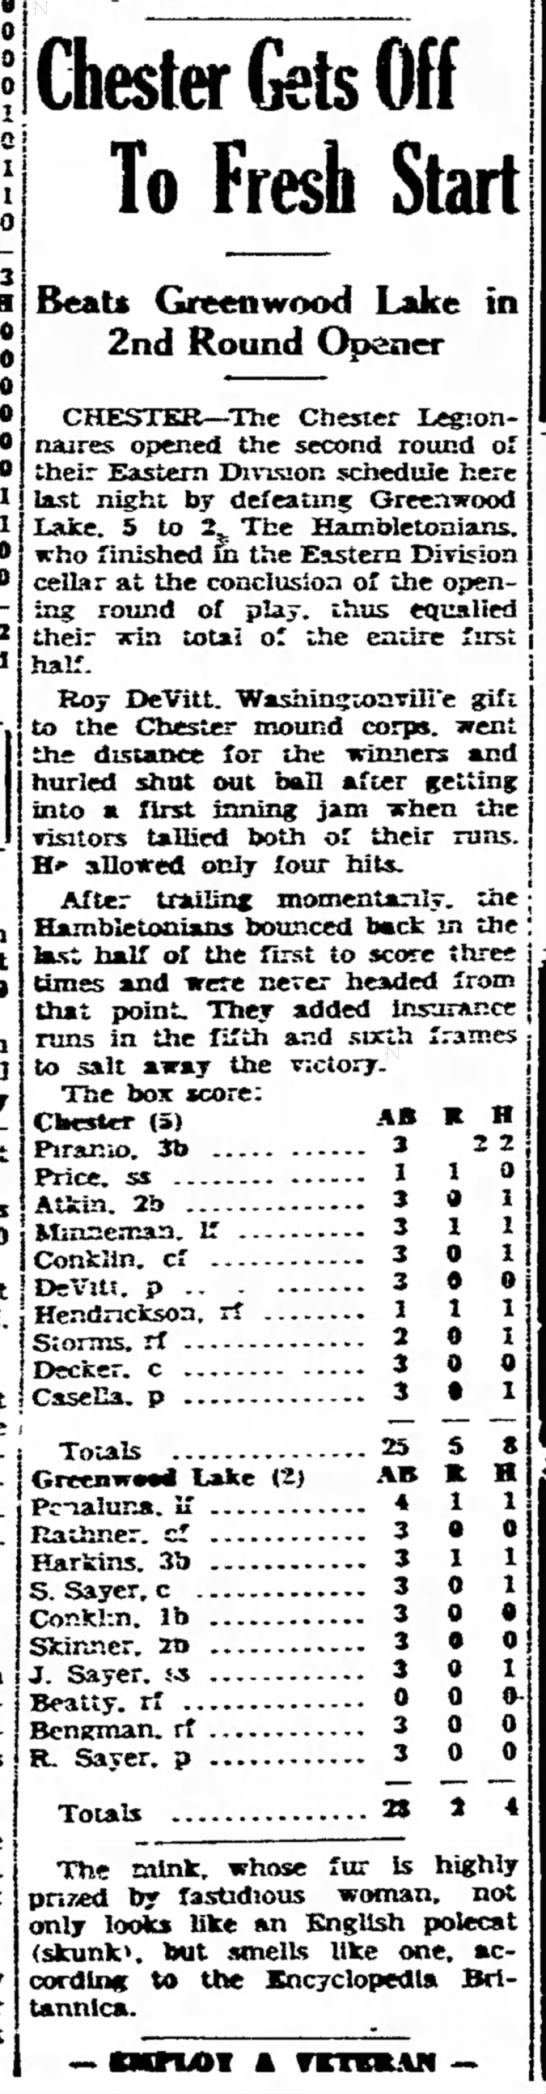 19470708 RoyWD Middletown Times Herald (Middletown, New York) Tuesday, July 8, 1947 p12 CLIP 2of2 - l| 1 0 3 0 0 at at i Chester Gets Off To Fresh...